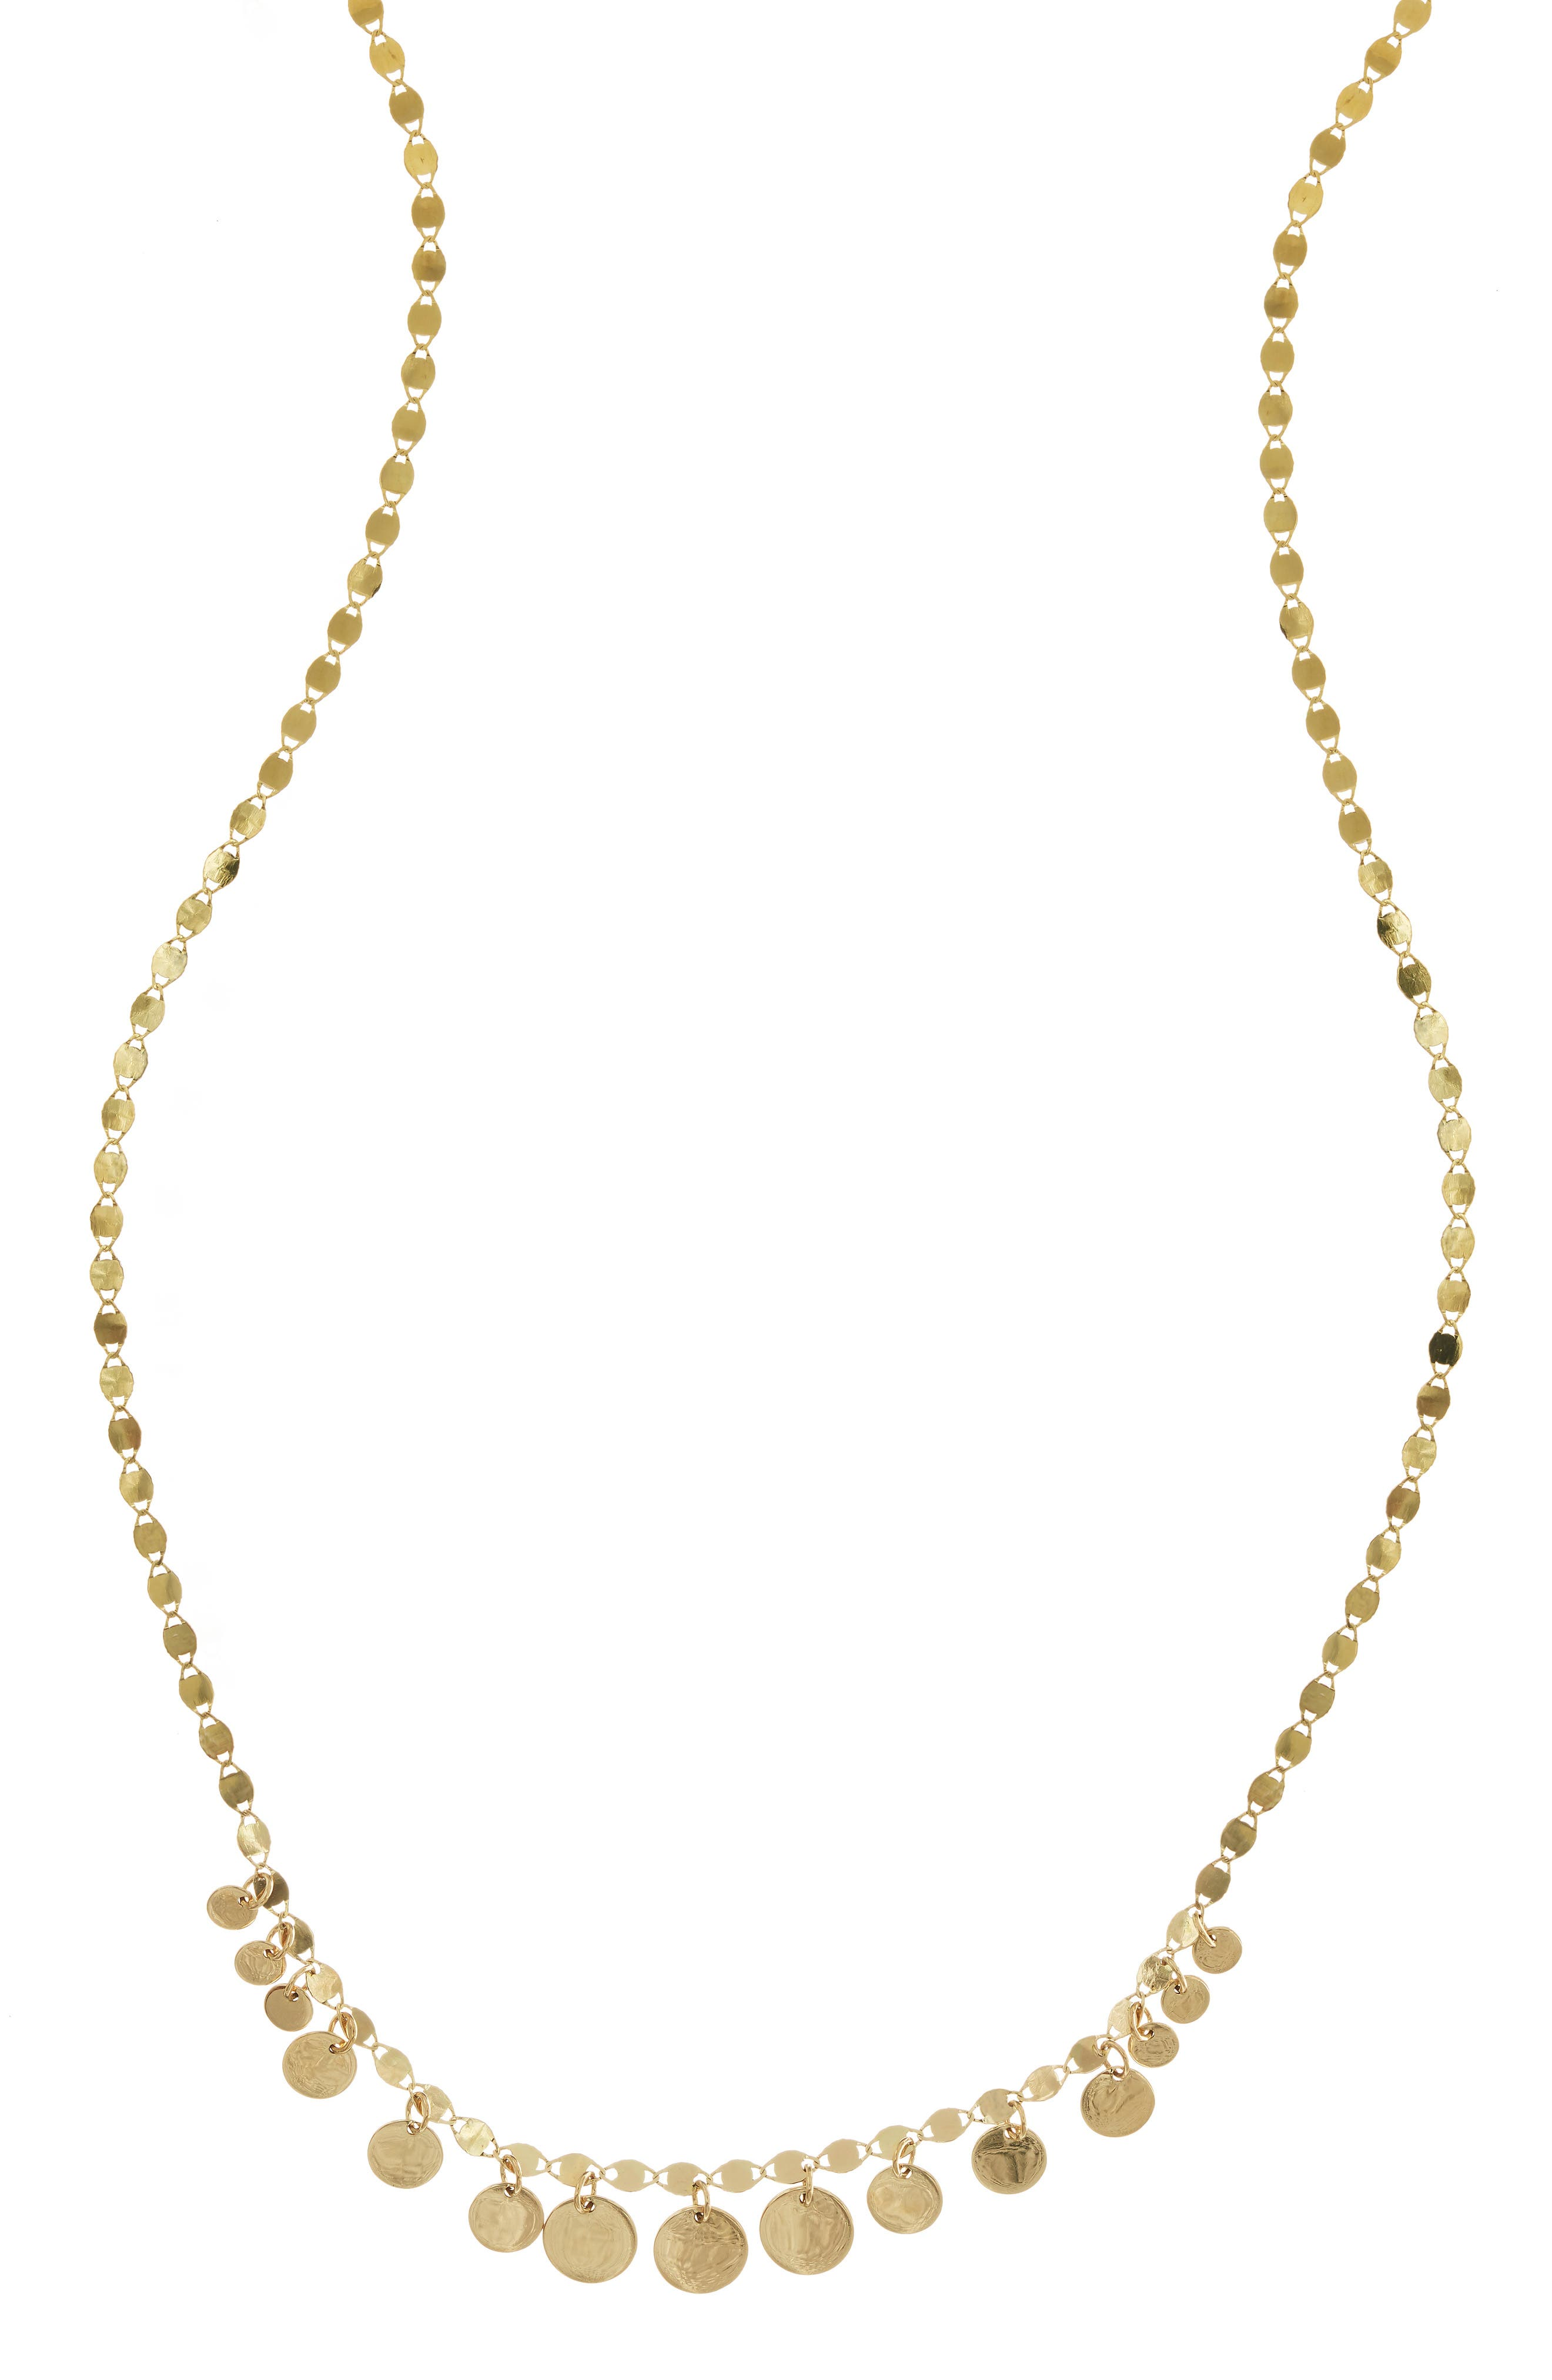 Lane Jewelry Frontal Necklace